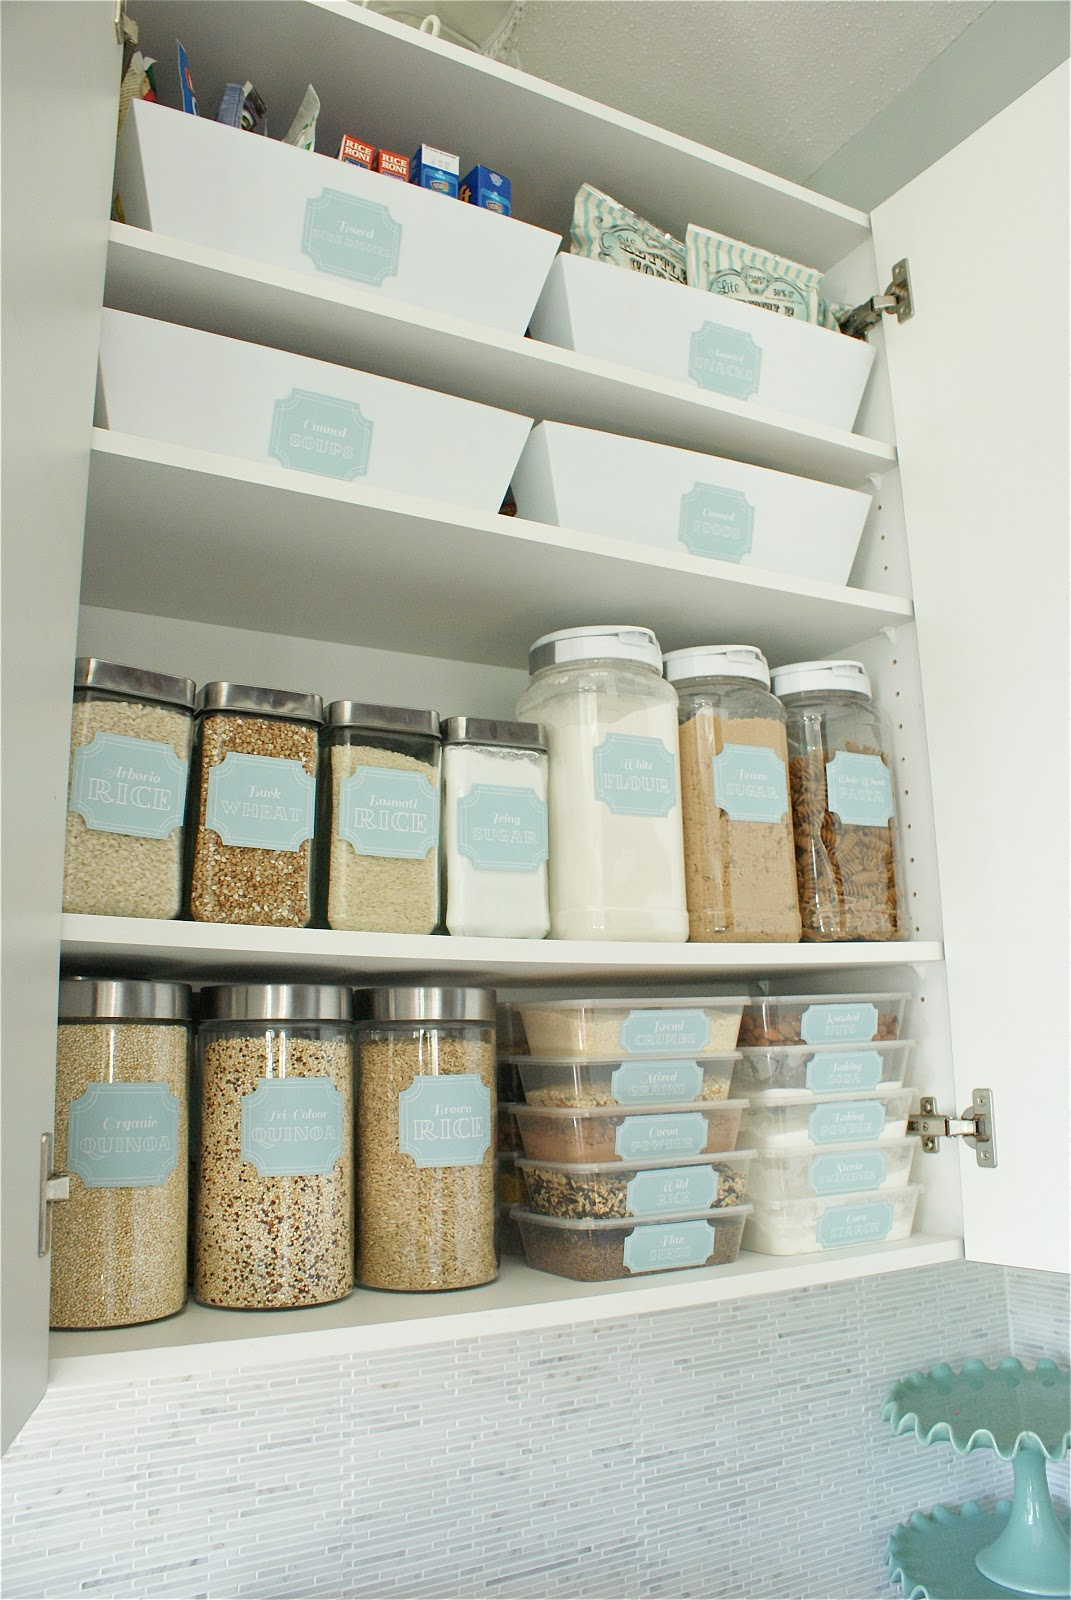 Home Kitchen Pantry Organization Ideas Mirabelle: organizing home